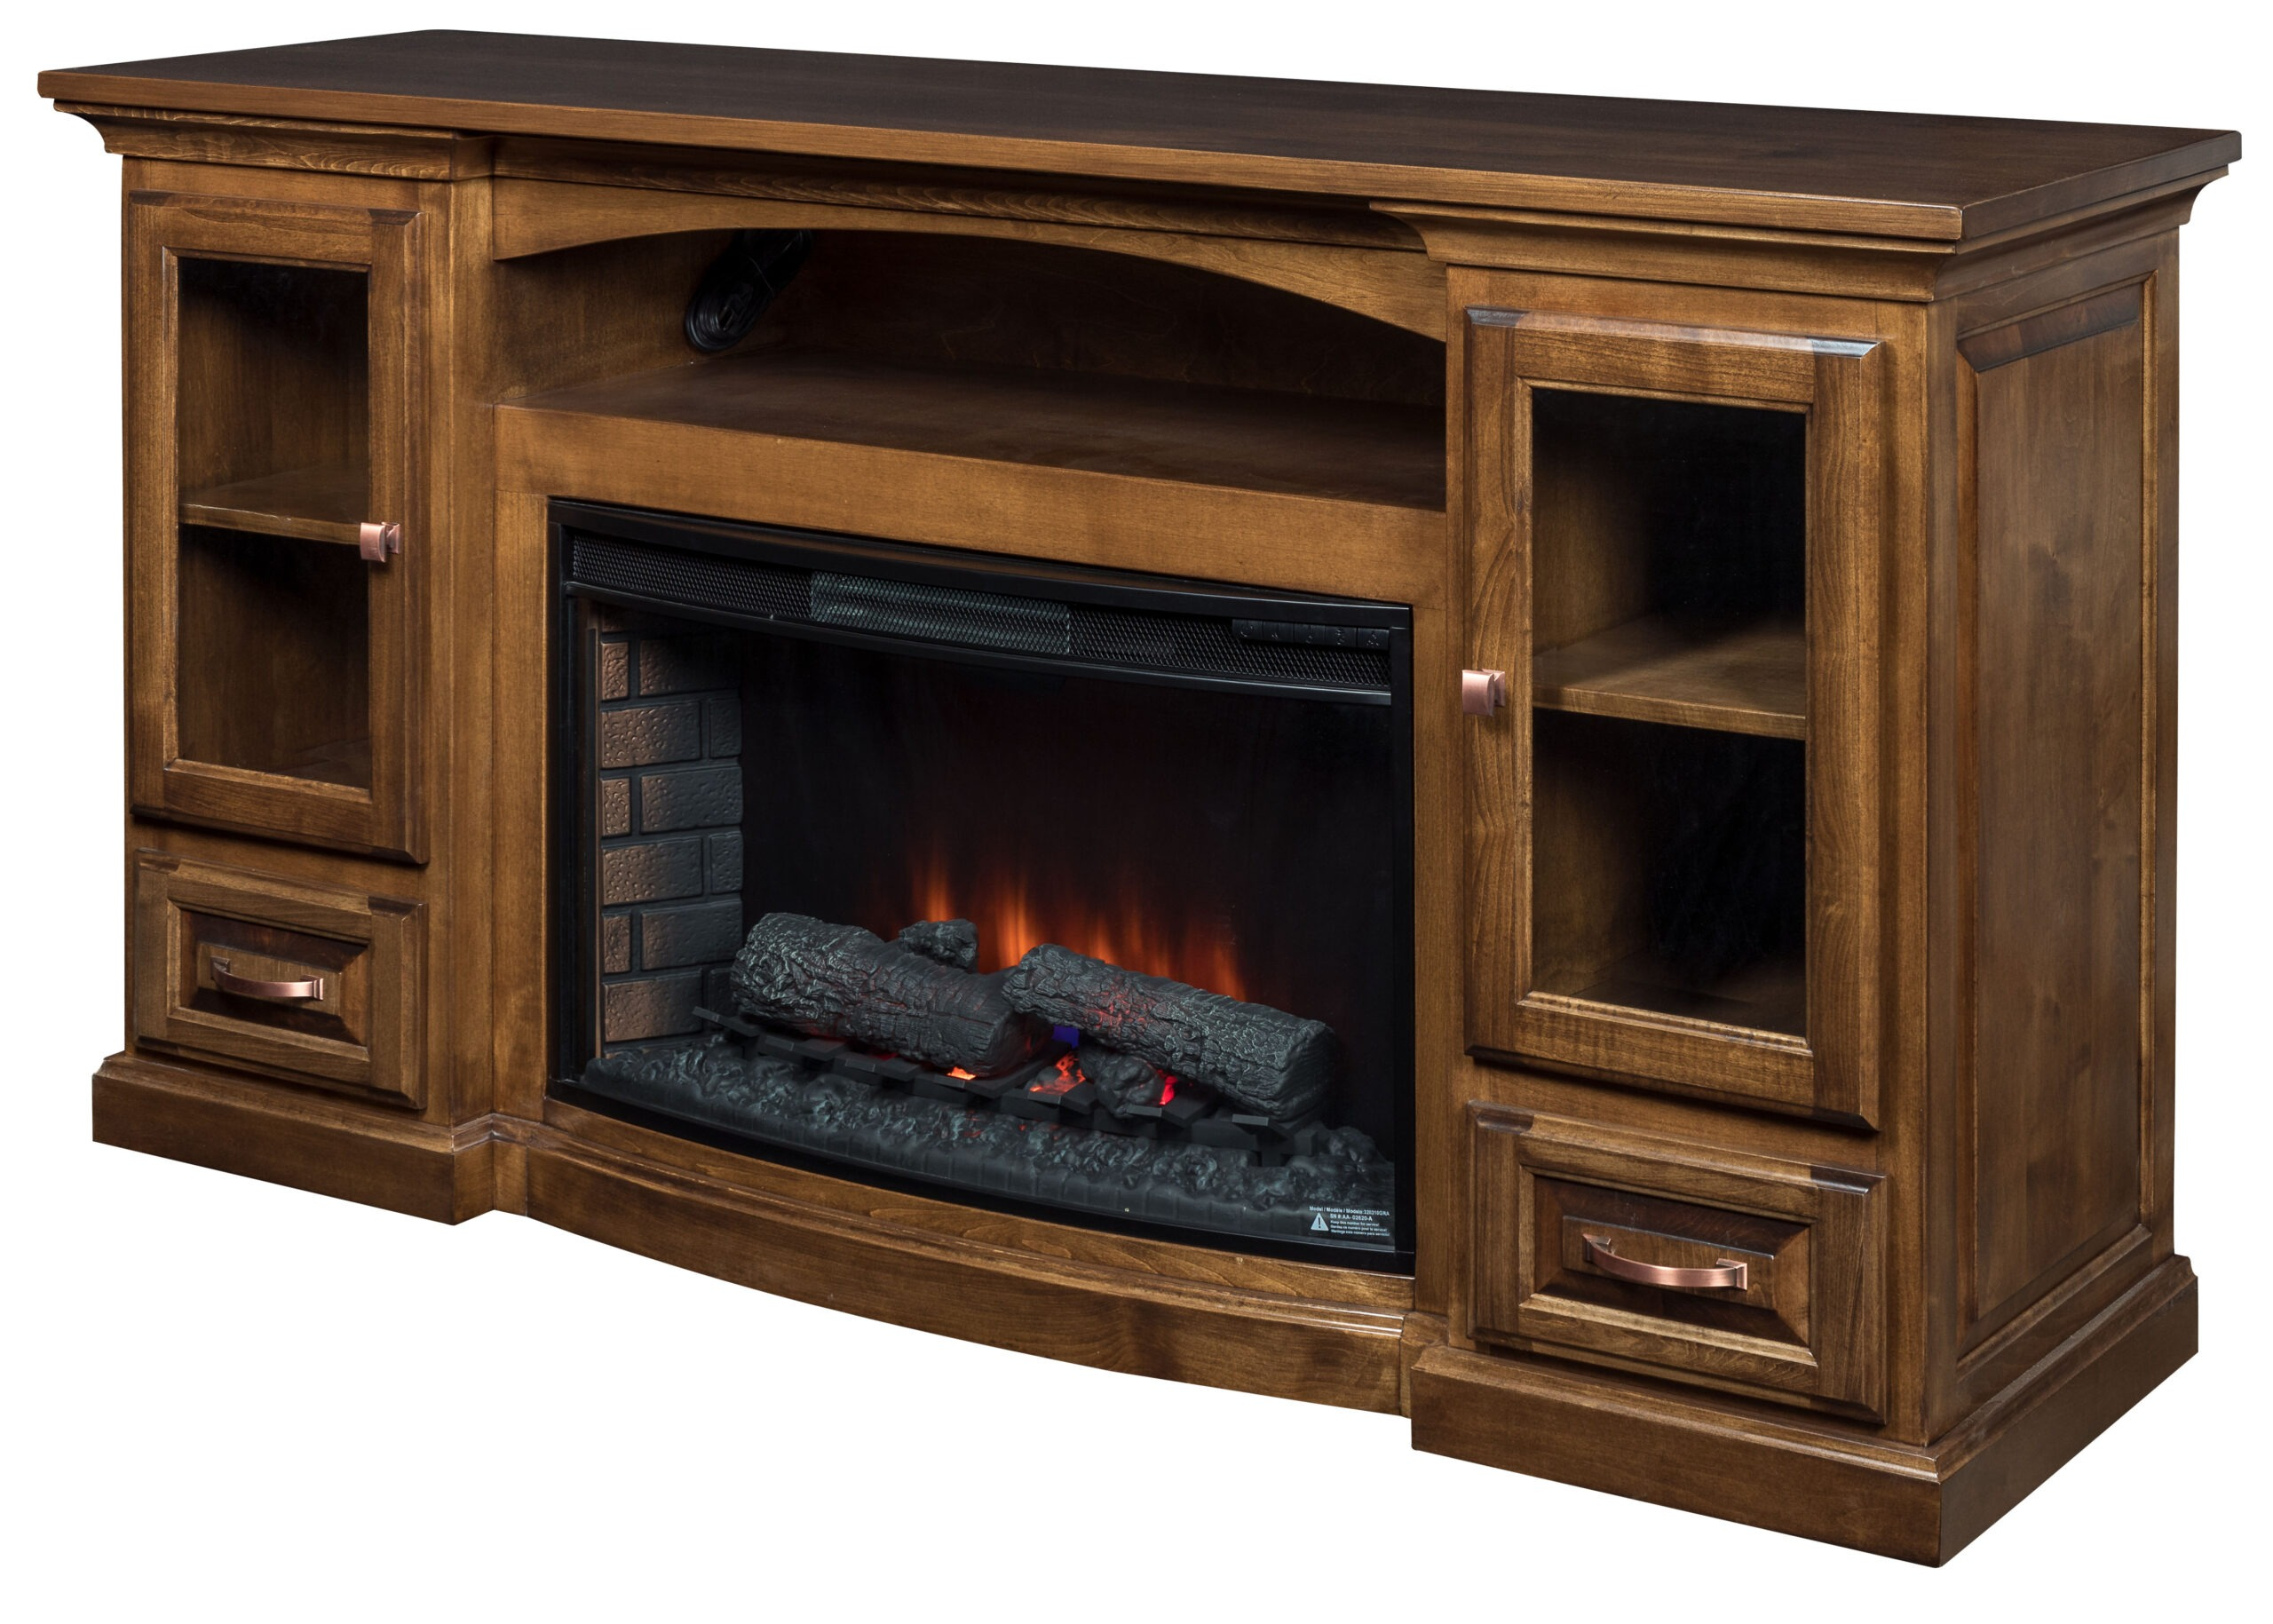 Grinnel Fireplace